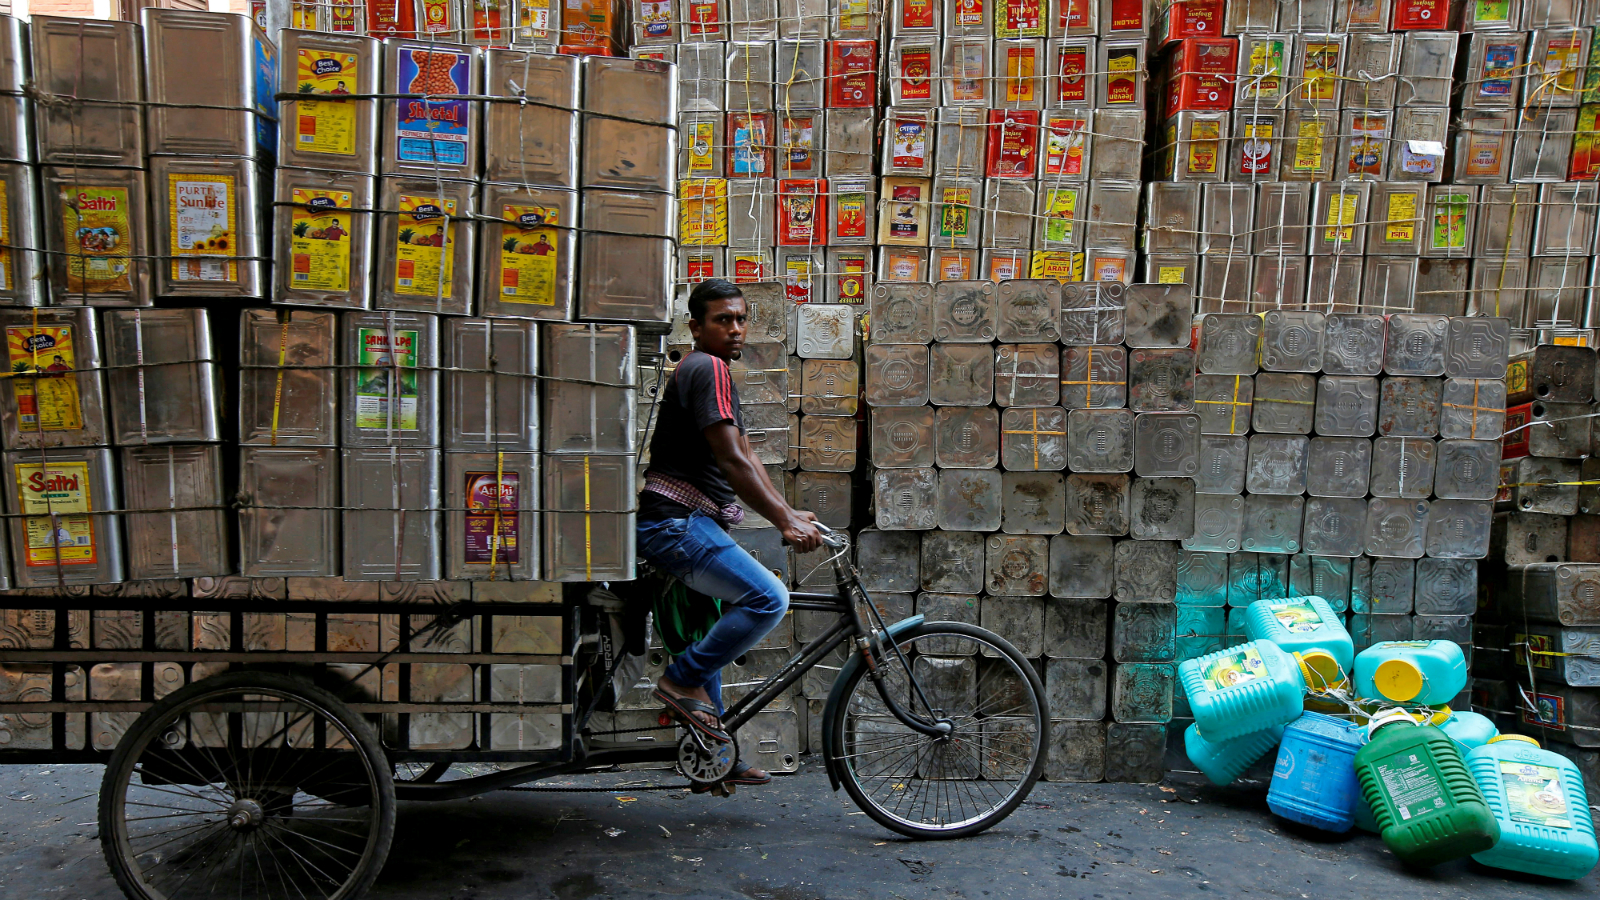 A man pedals a tricycle loaded with empty cooking oil containers in Kolkata, India, April 17, 2018.